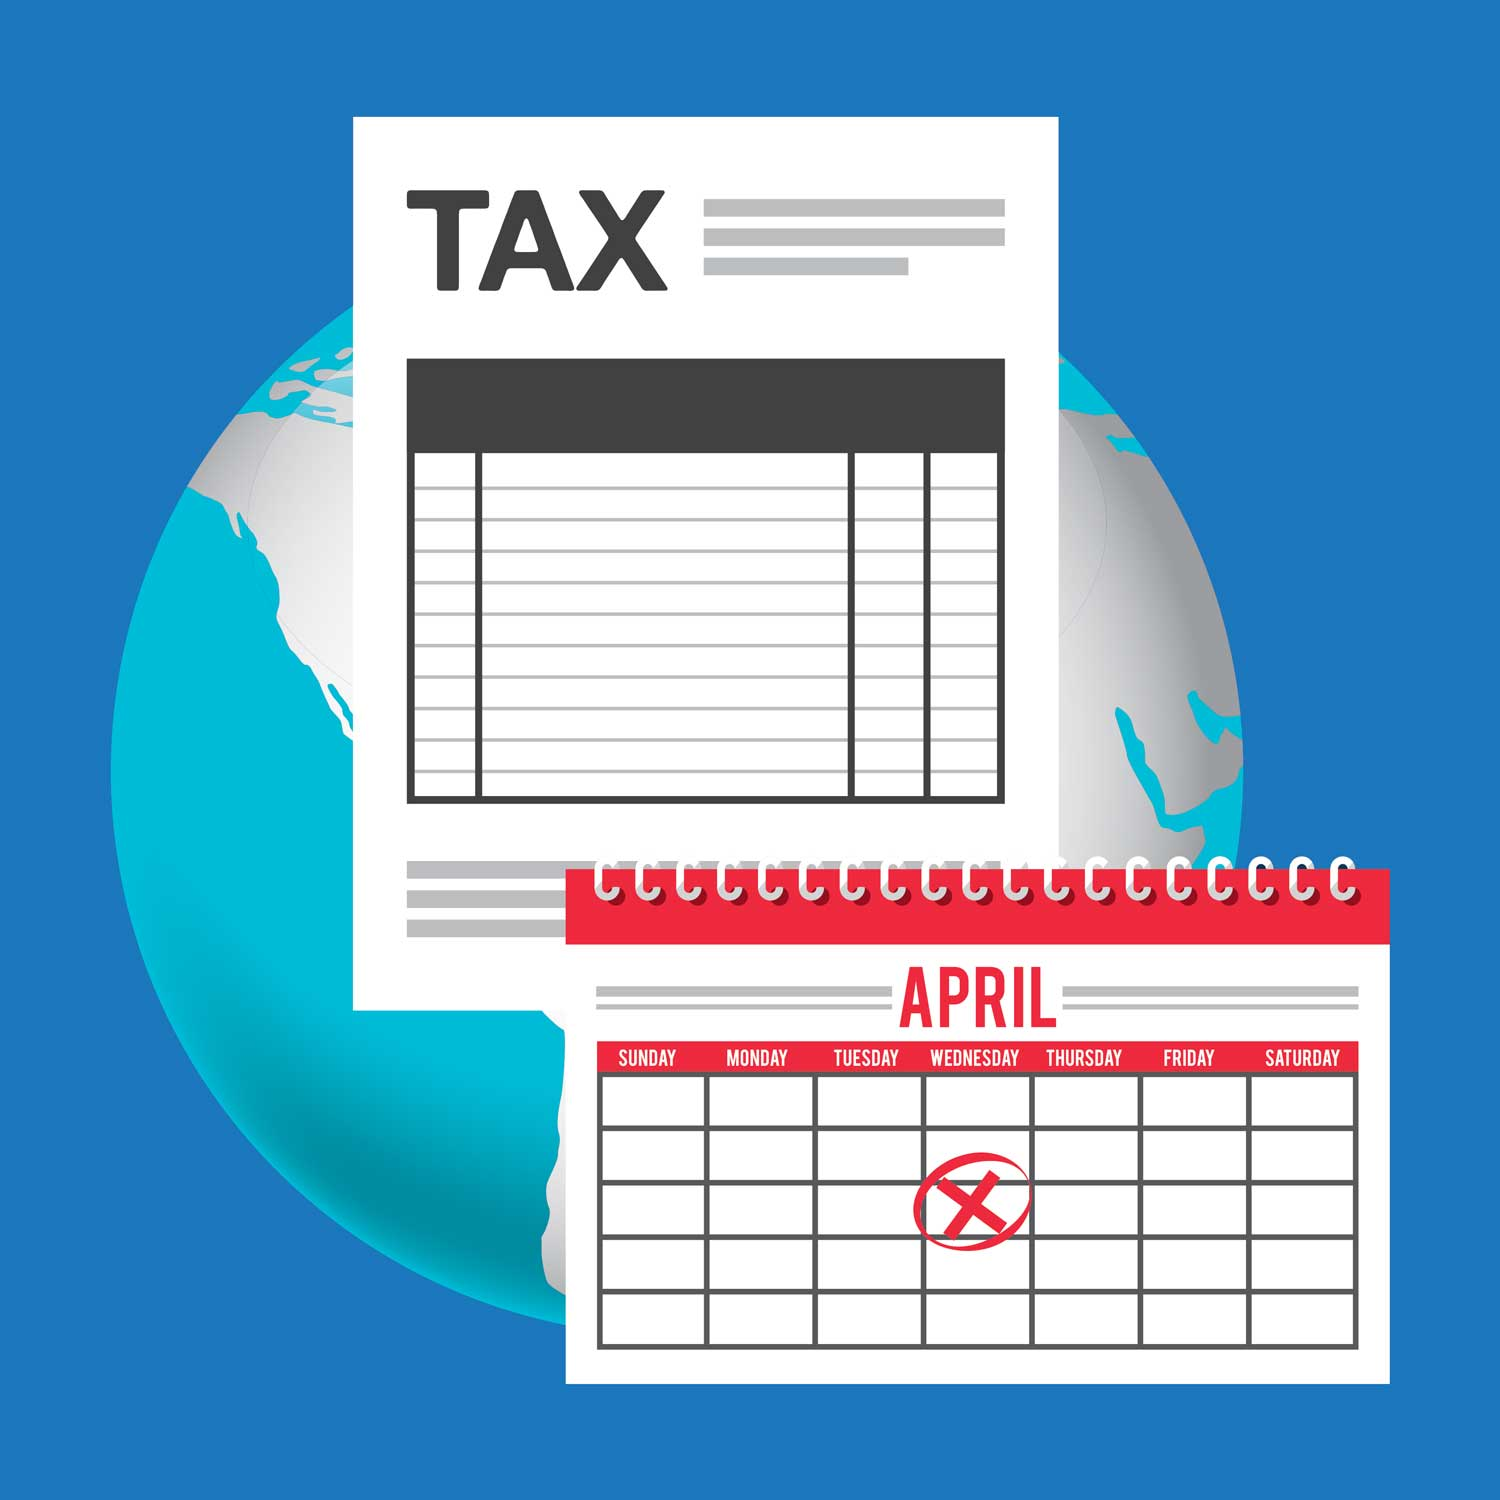 Tax Payments - Deposit payments before due date for federal, state, unemployment, workers compensation, and other payroll related taxes or payments.